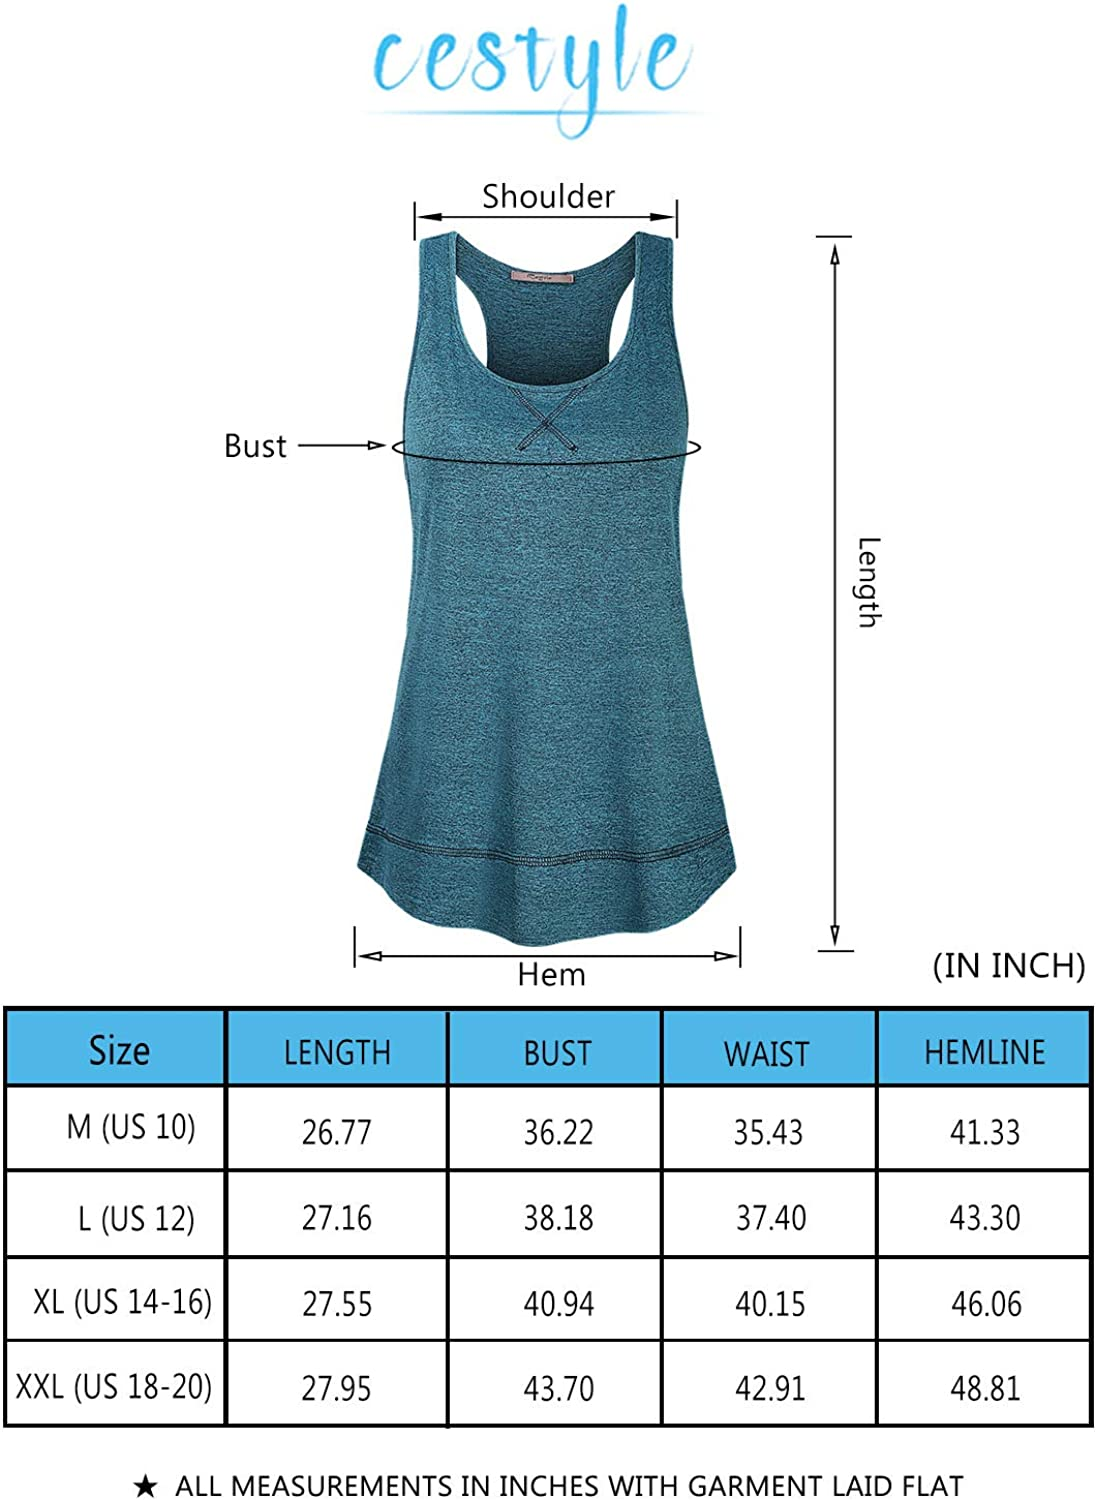 Cestyle Womens Round Neck Yoga Tops Workout Running Shirts Activewear